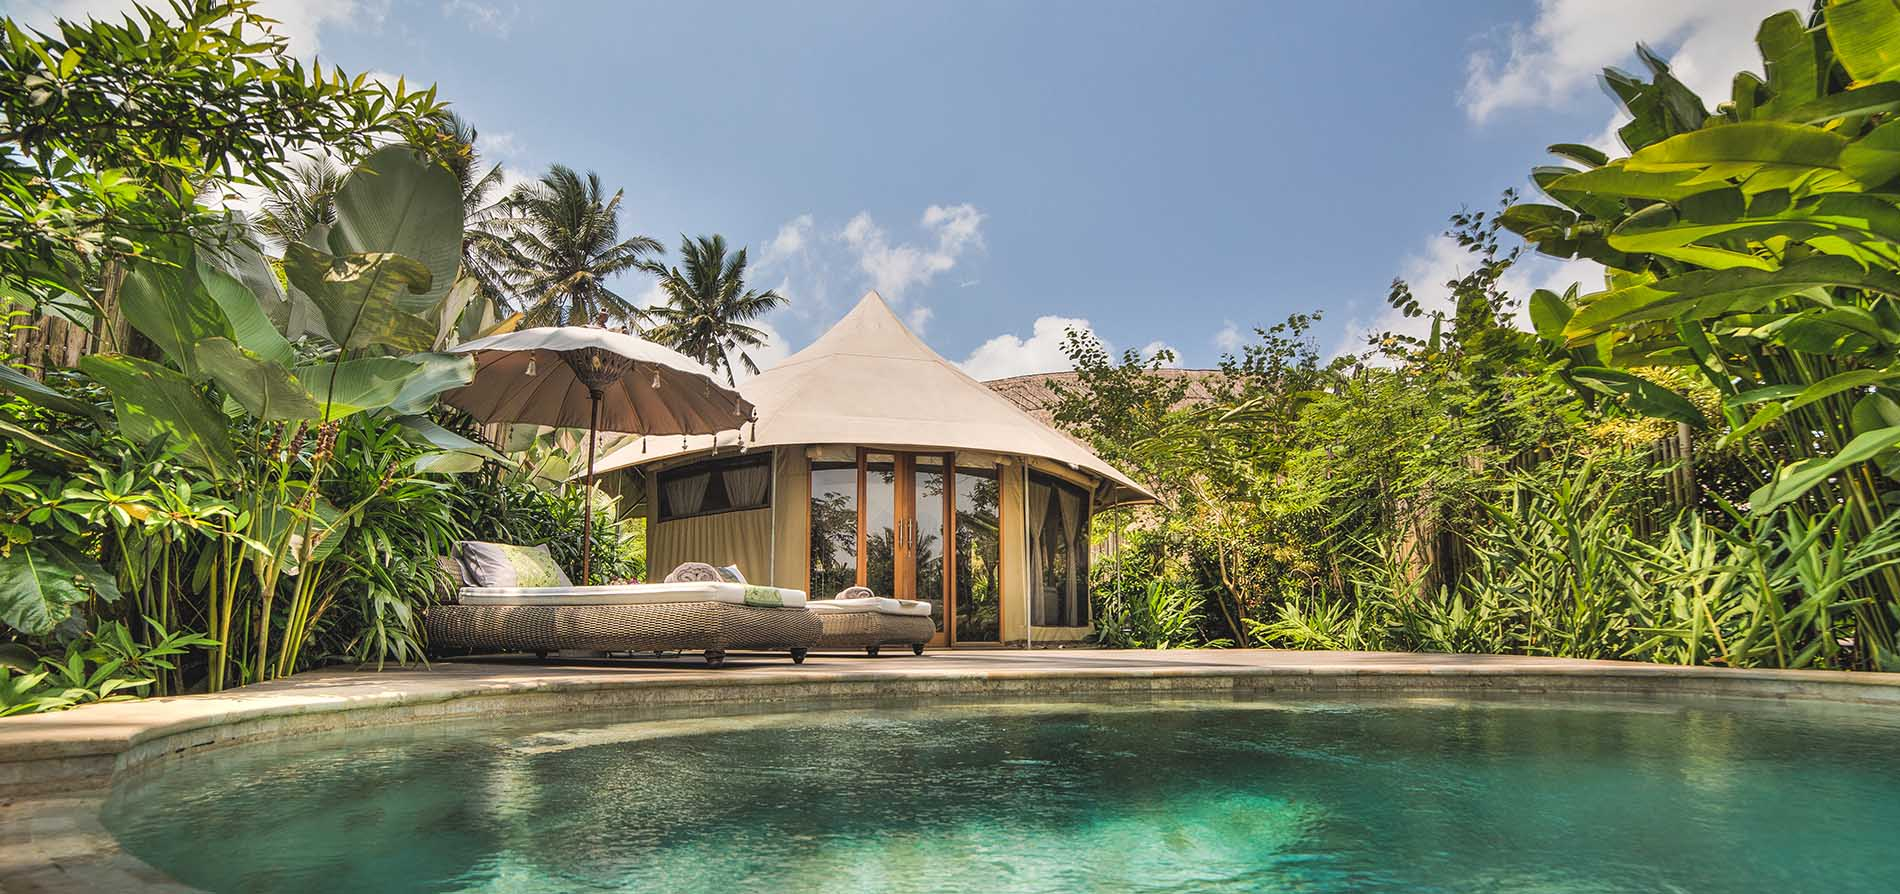 Luxury Resort in Bali, the best boutique hotel in Ubud Indonesia